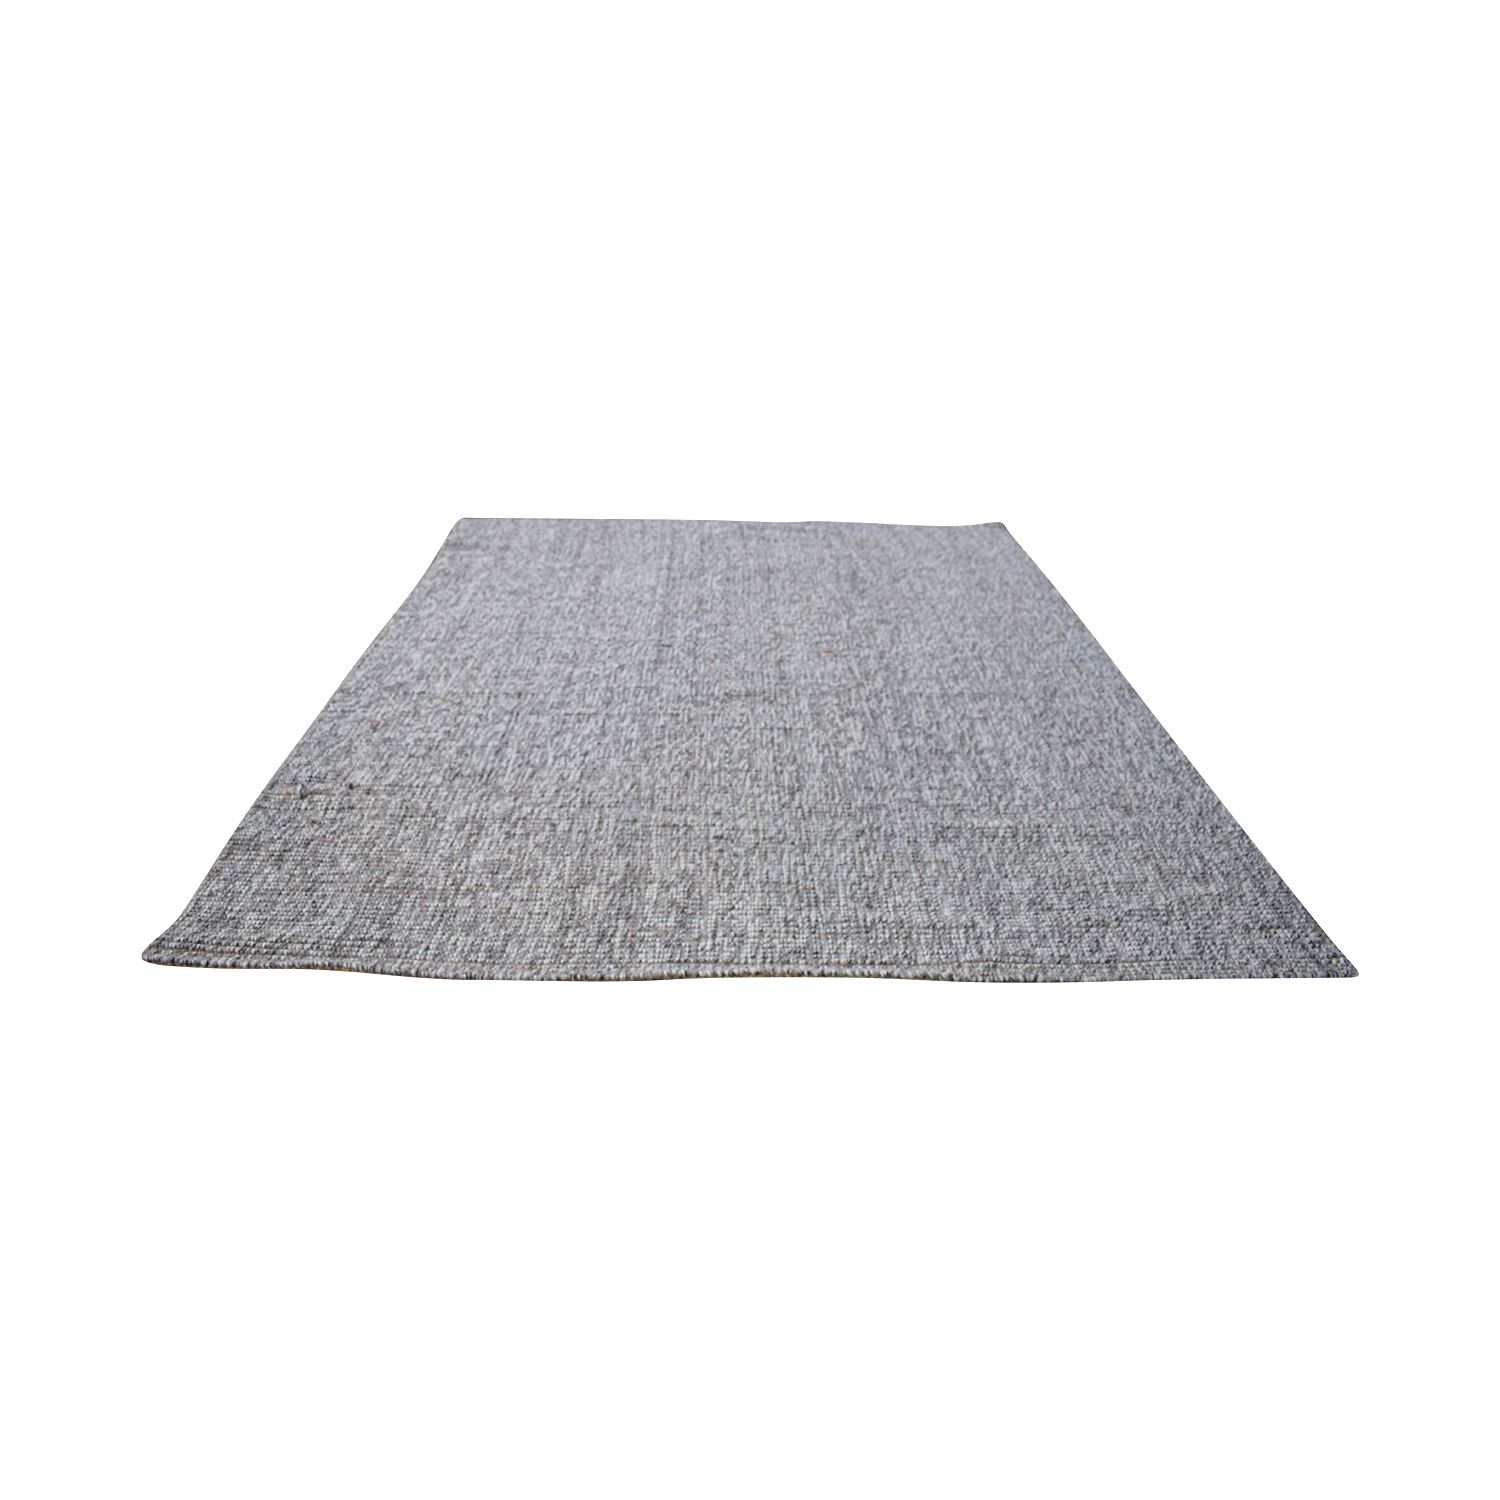 shop Crate & Barrel Grey 5x8 Popcorn Rug Crate & Barrel Decor